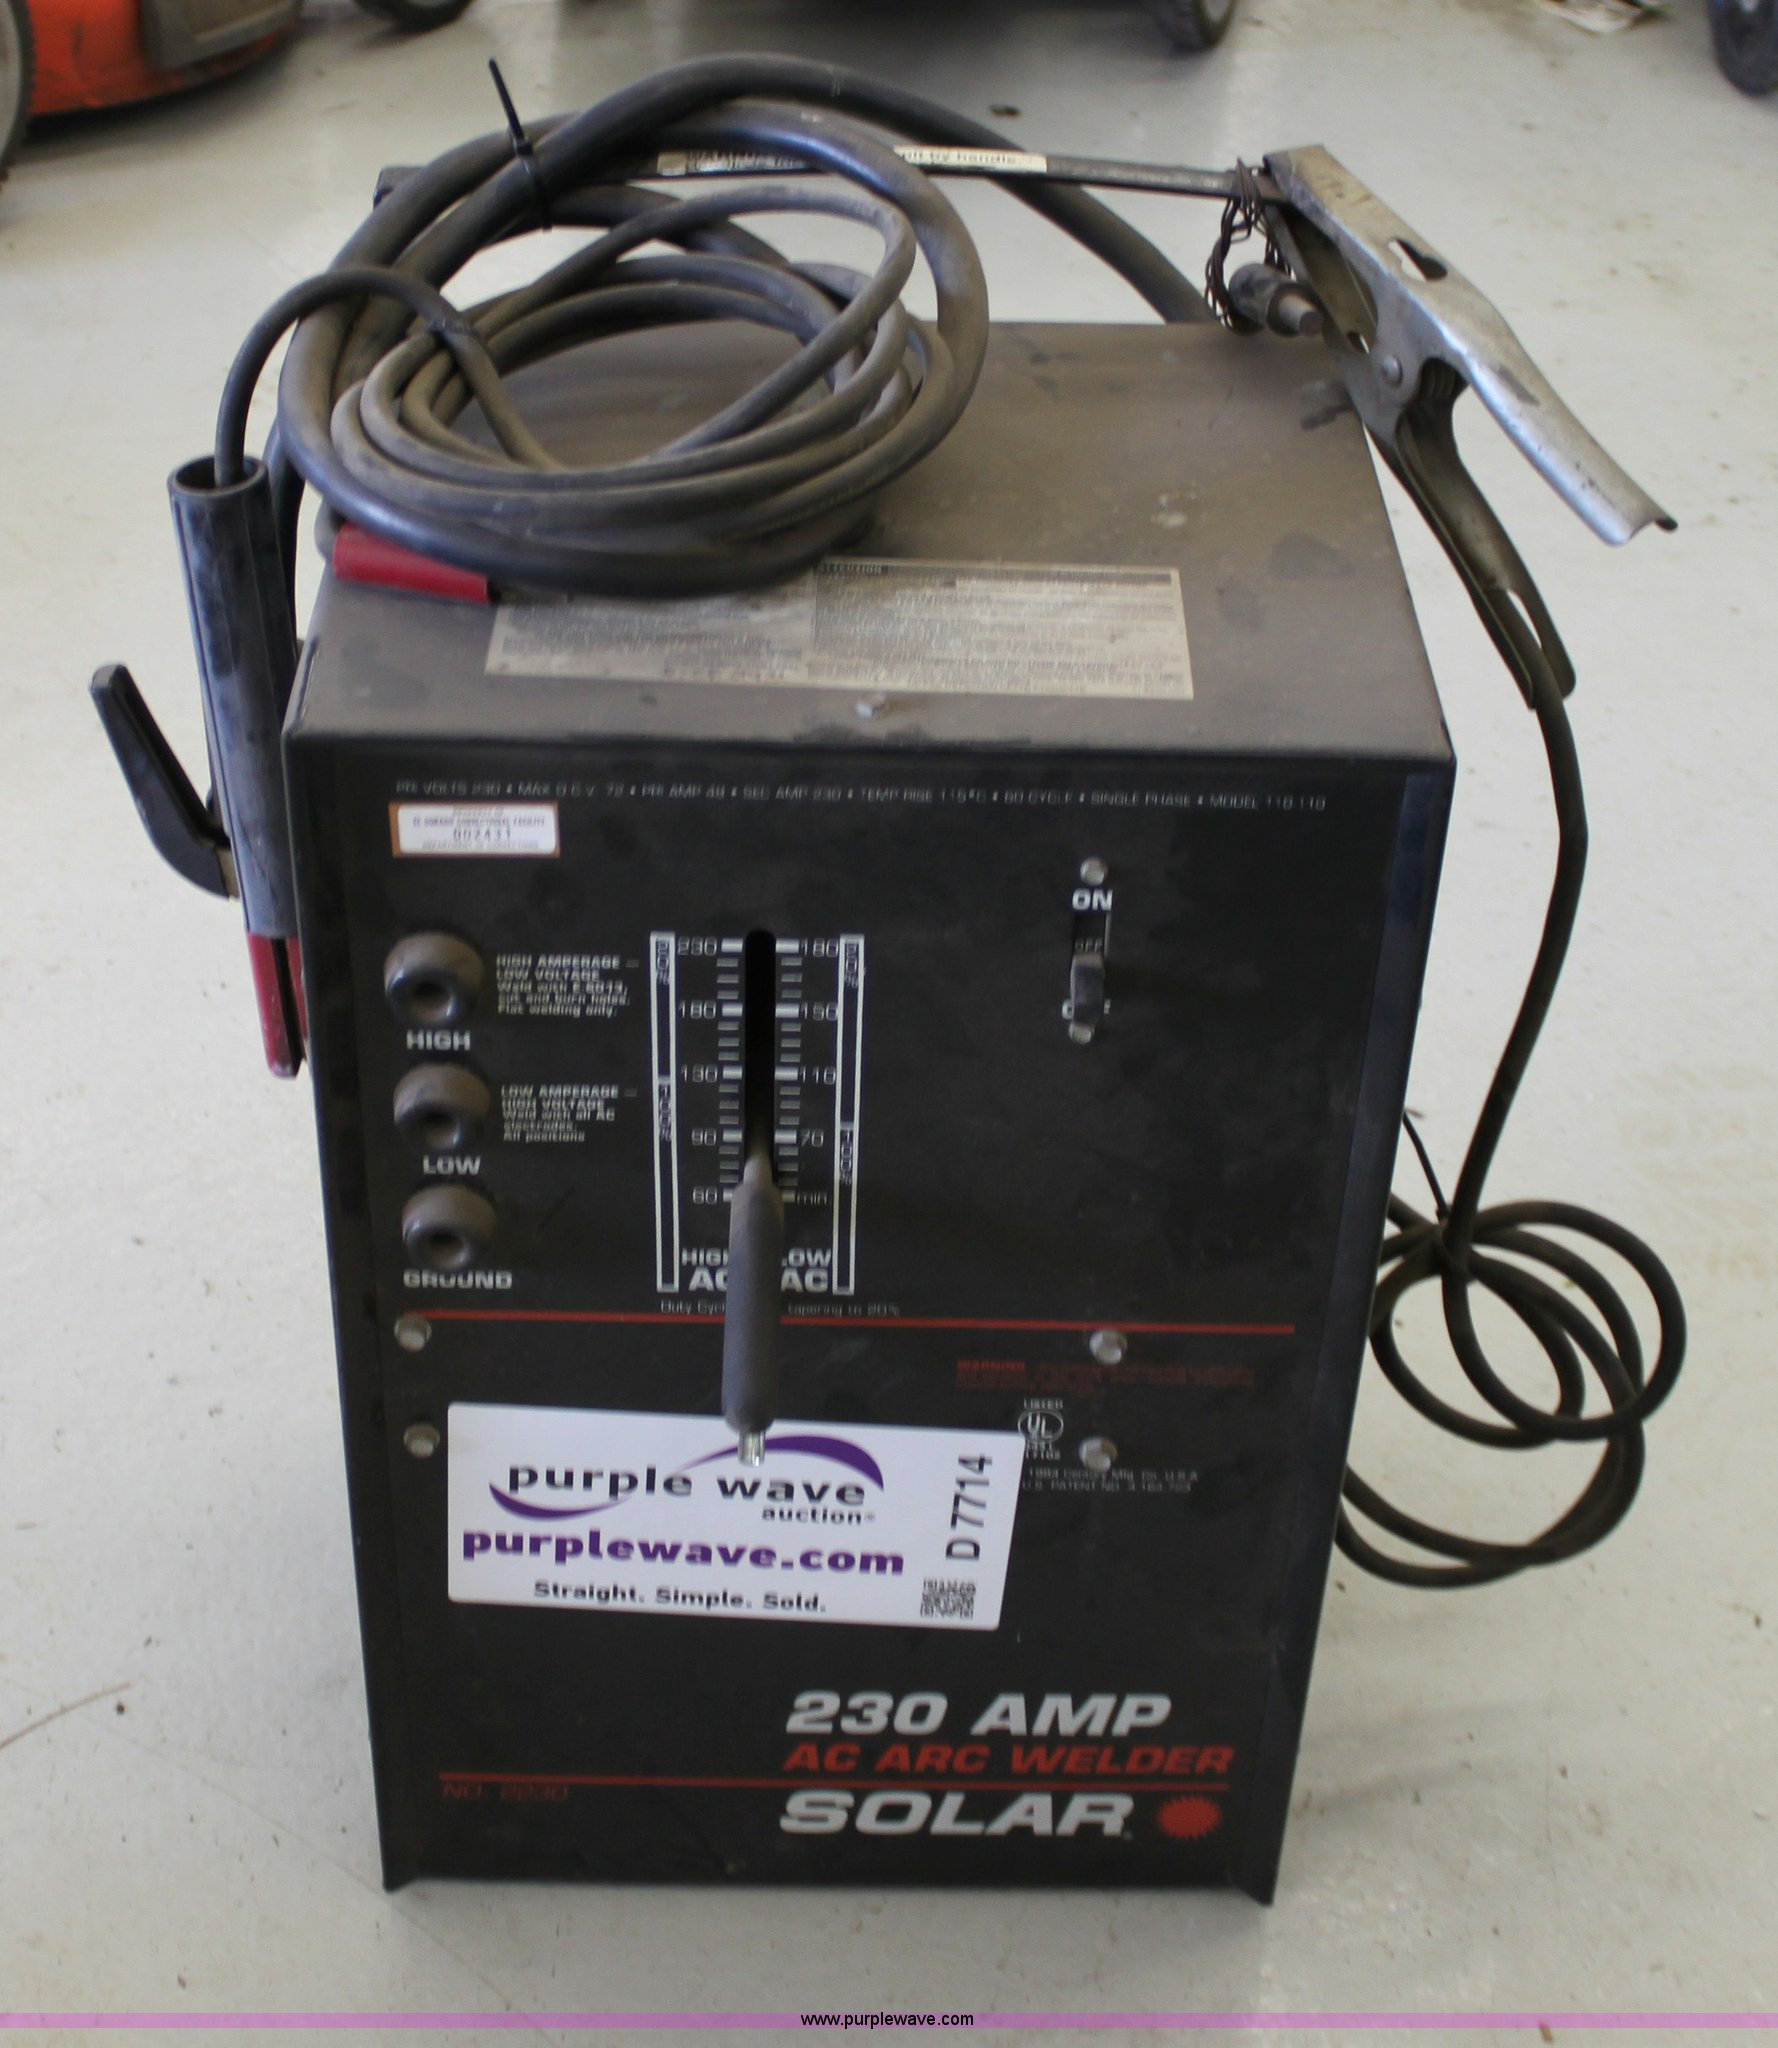 Solar 230 amp AC arc welder | Item D7714 | SOLD! May 8 Gover